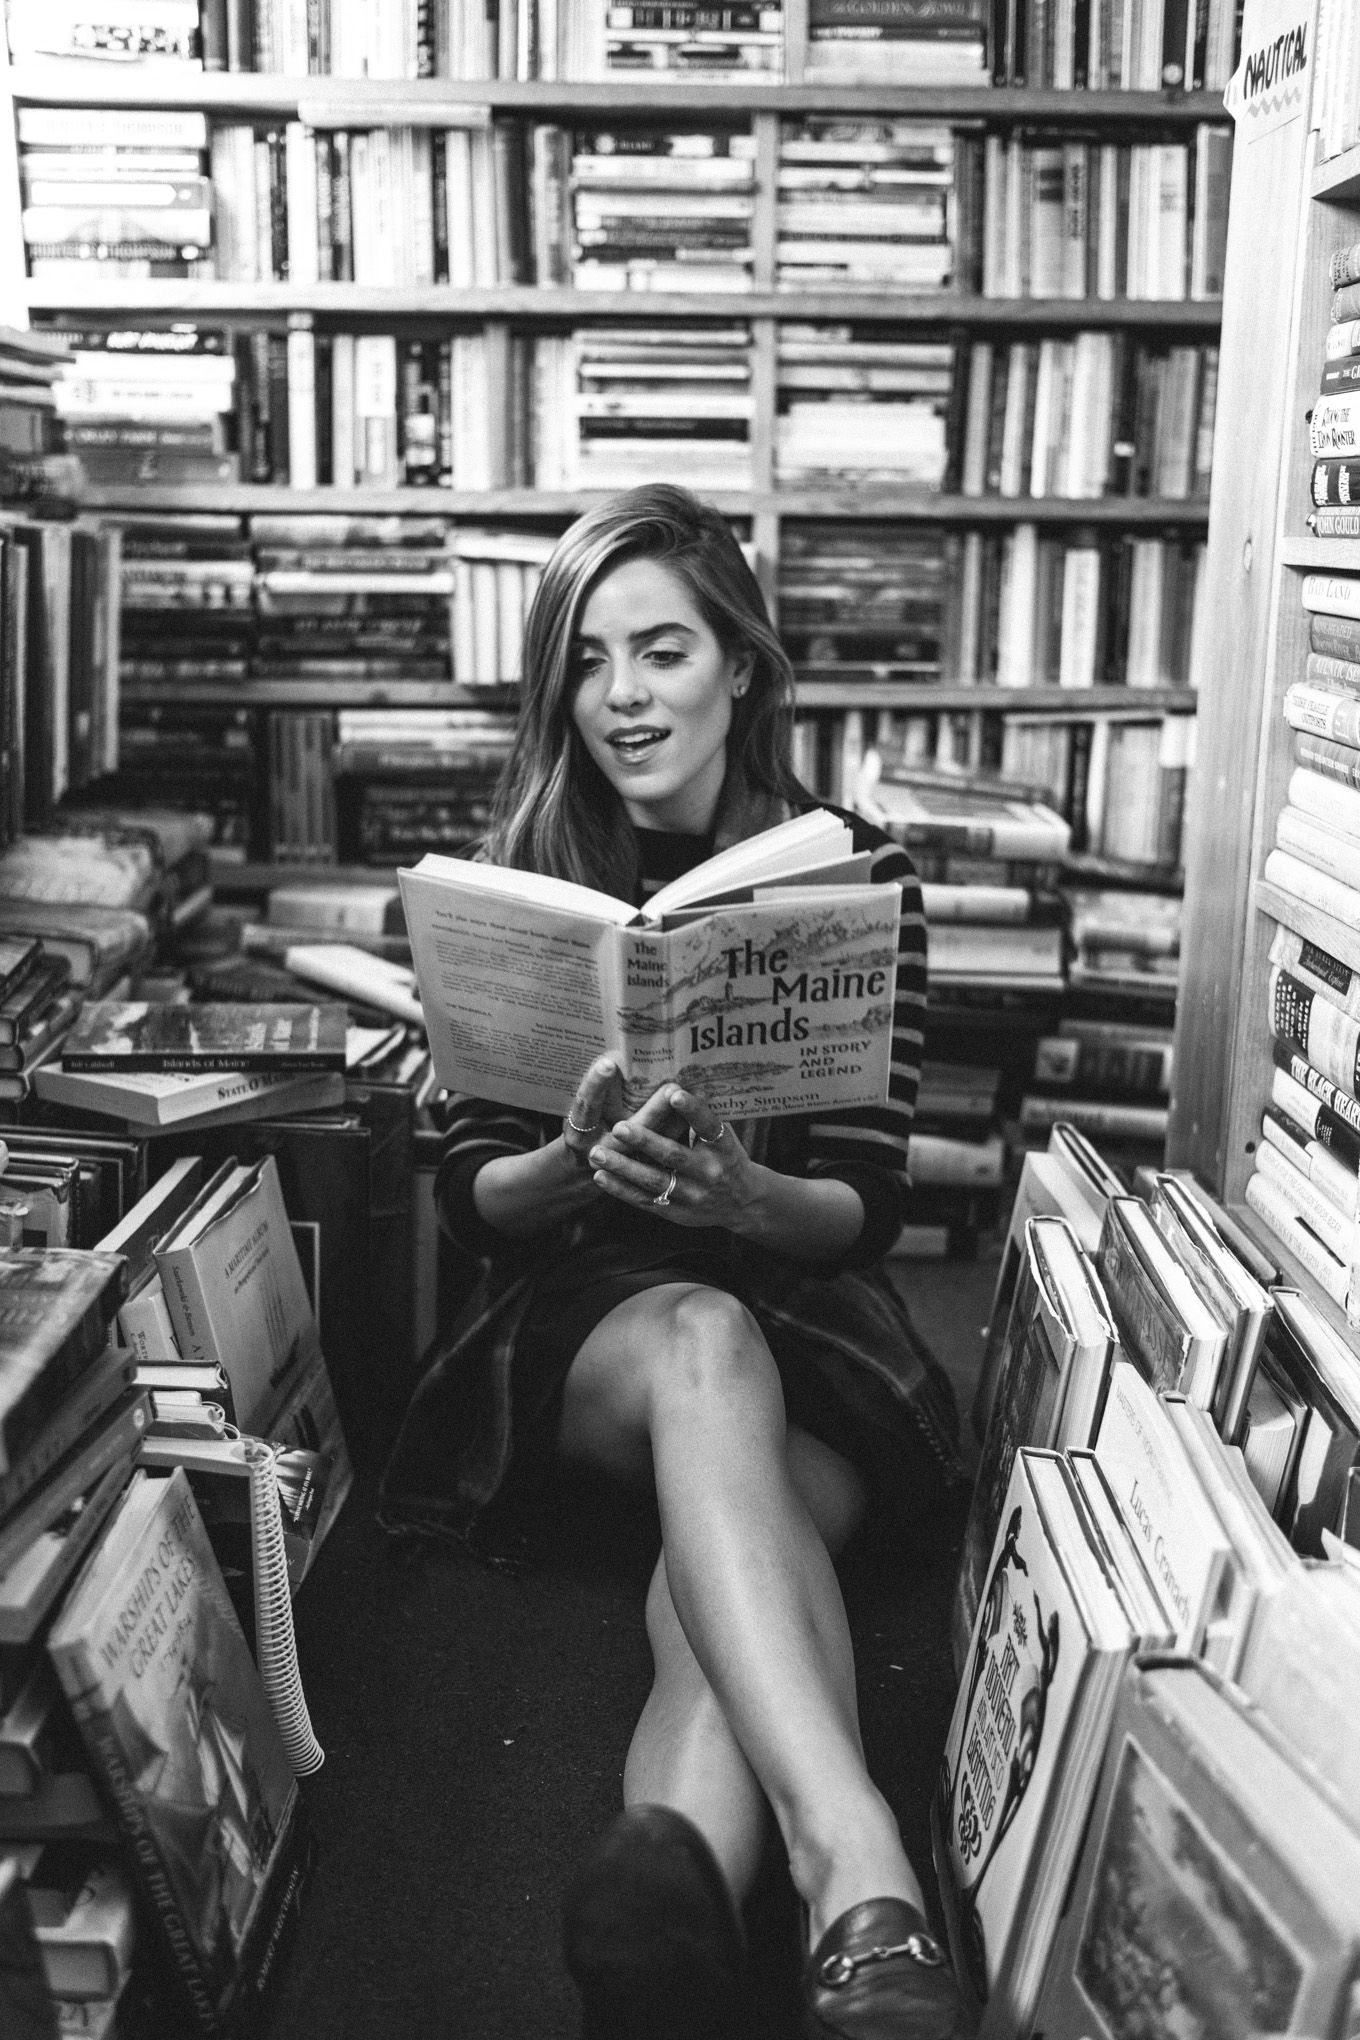 In the mood for our fall reading list gal meets glam